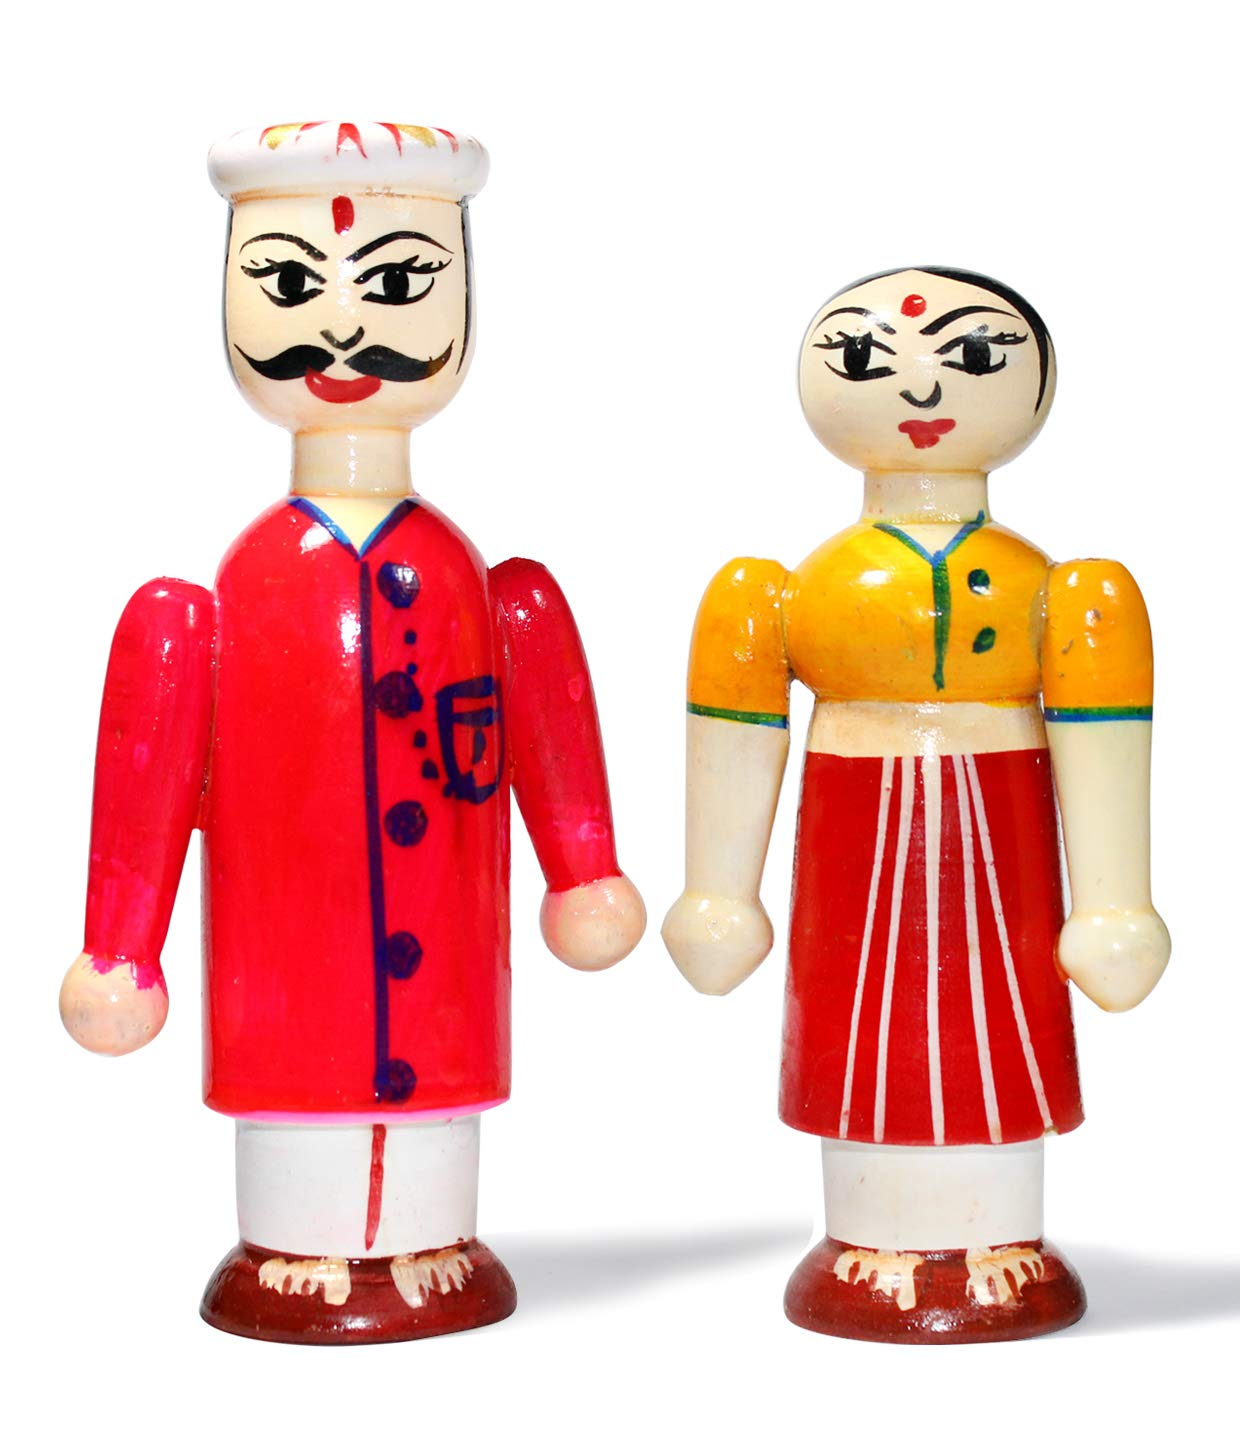 Superbazaar Handcrafted Wooden Dolls - Couple Hand Puppets 1 Pc